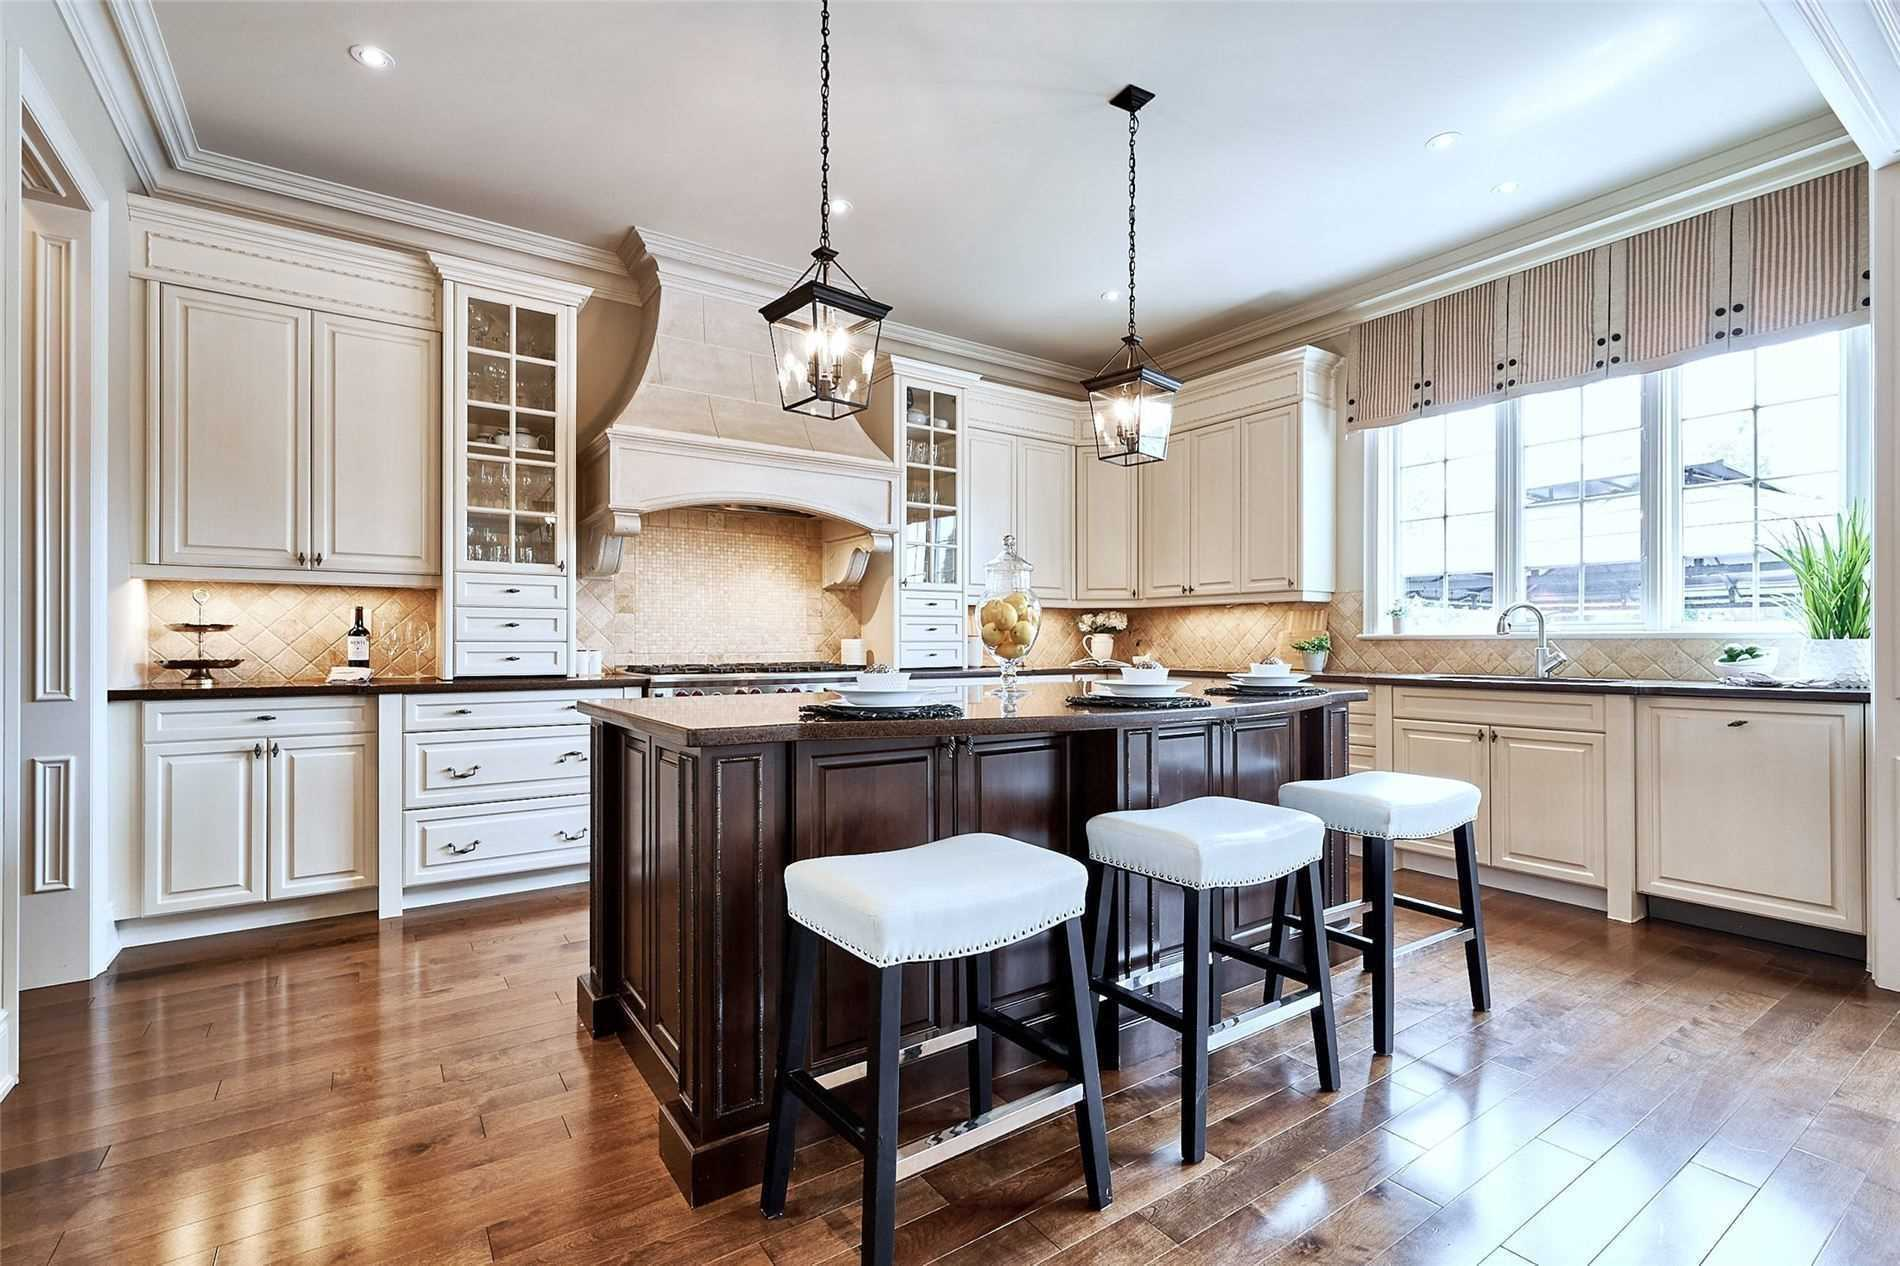 108 Colston Ave, Whitby